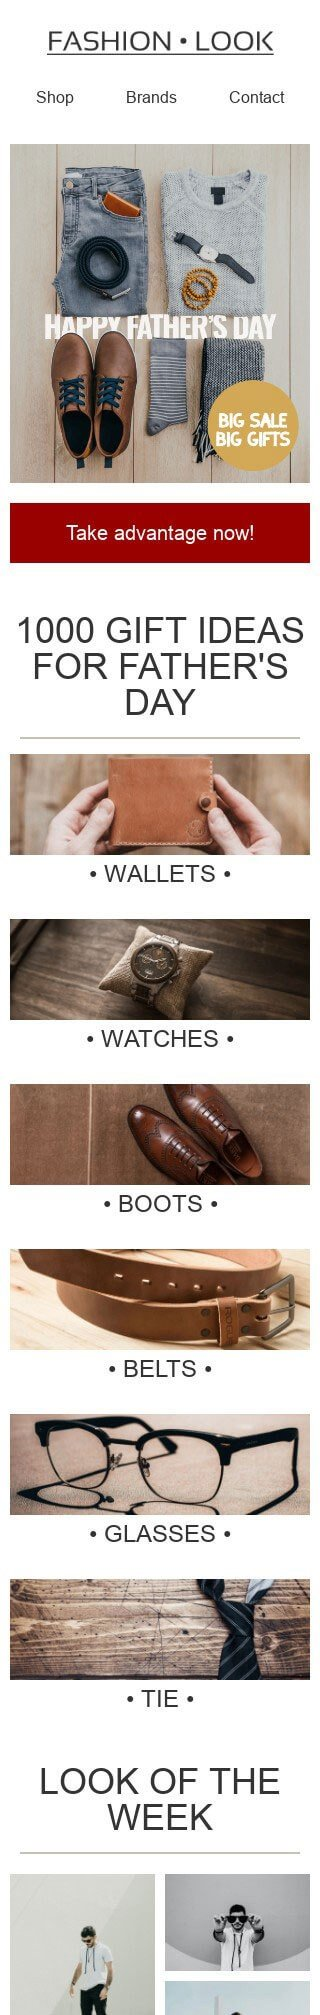 Father's Day Email Template «Accessories for men» for Fashion industry mobile view